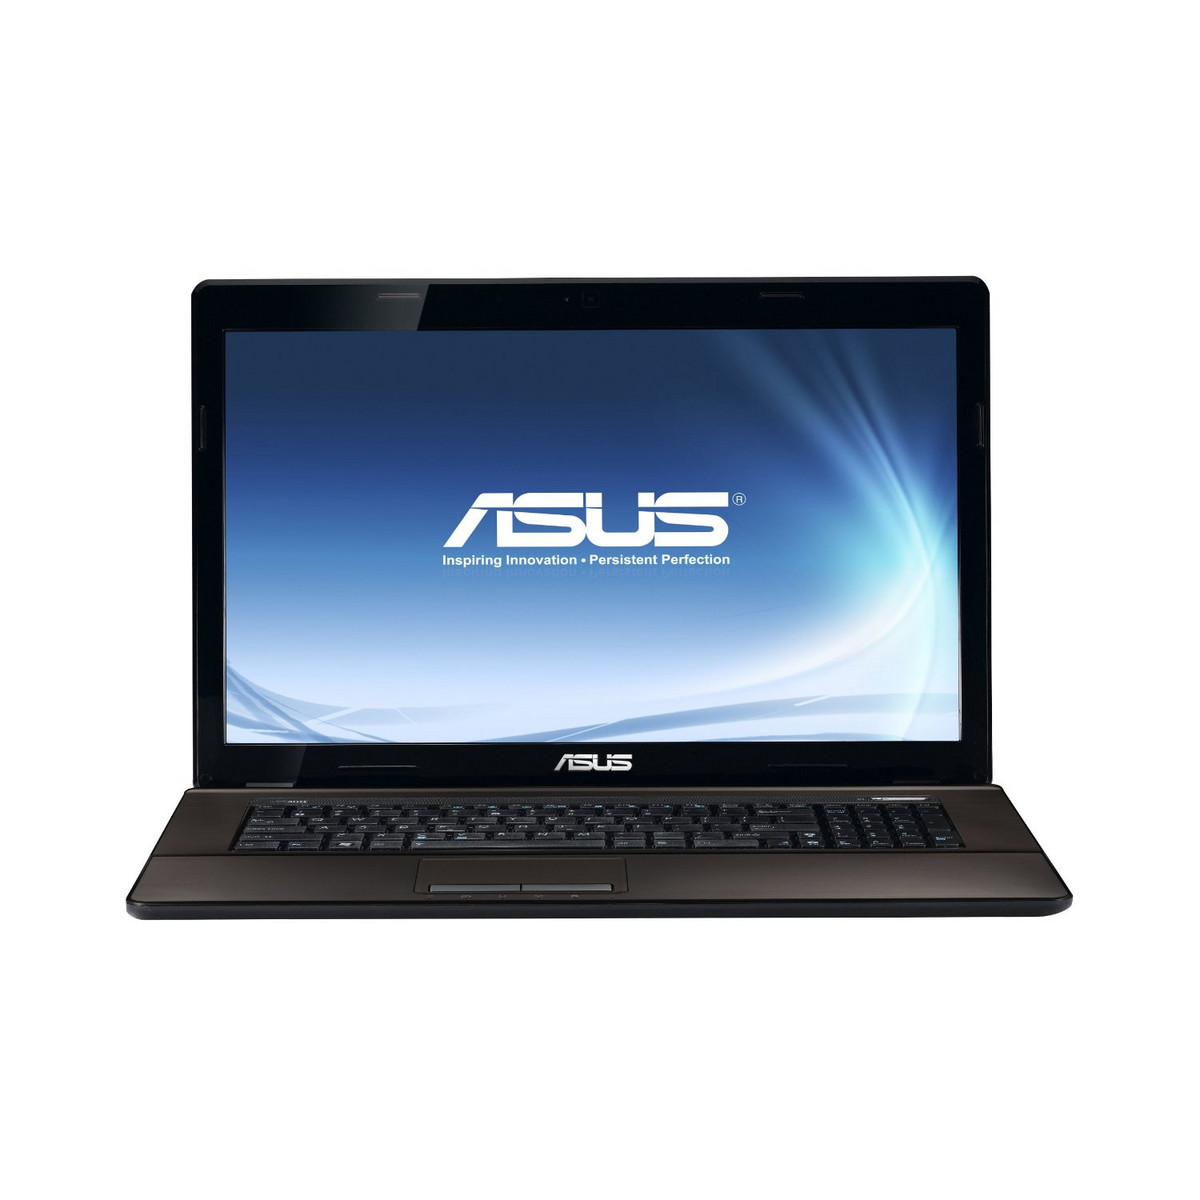 ASUS K73SV NOTEBOOK FAST BOOT DRIVERS FOR WINDOWS XP